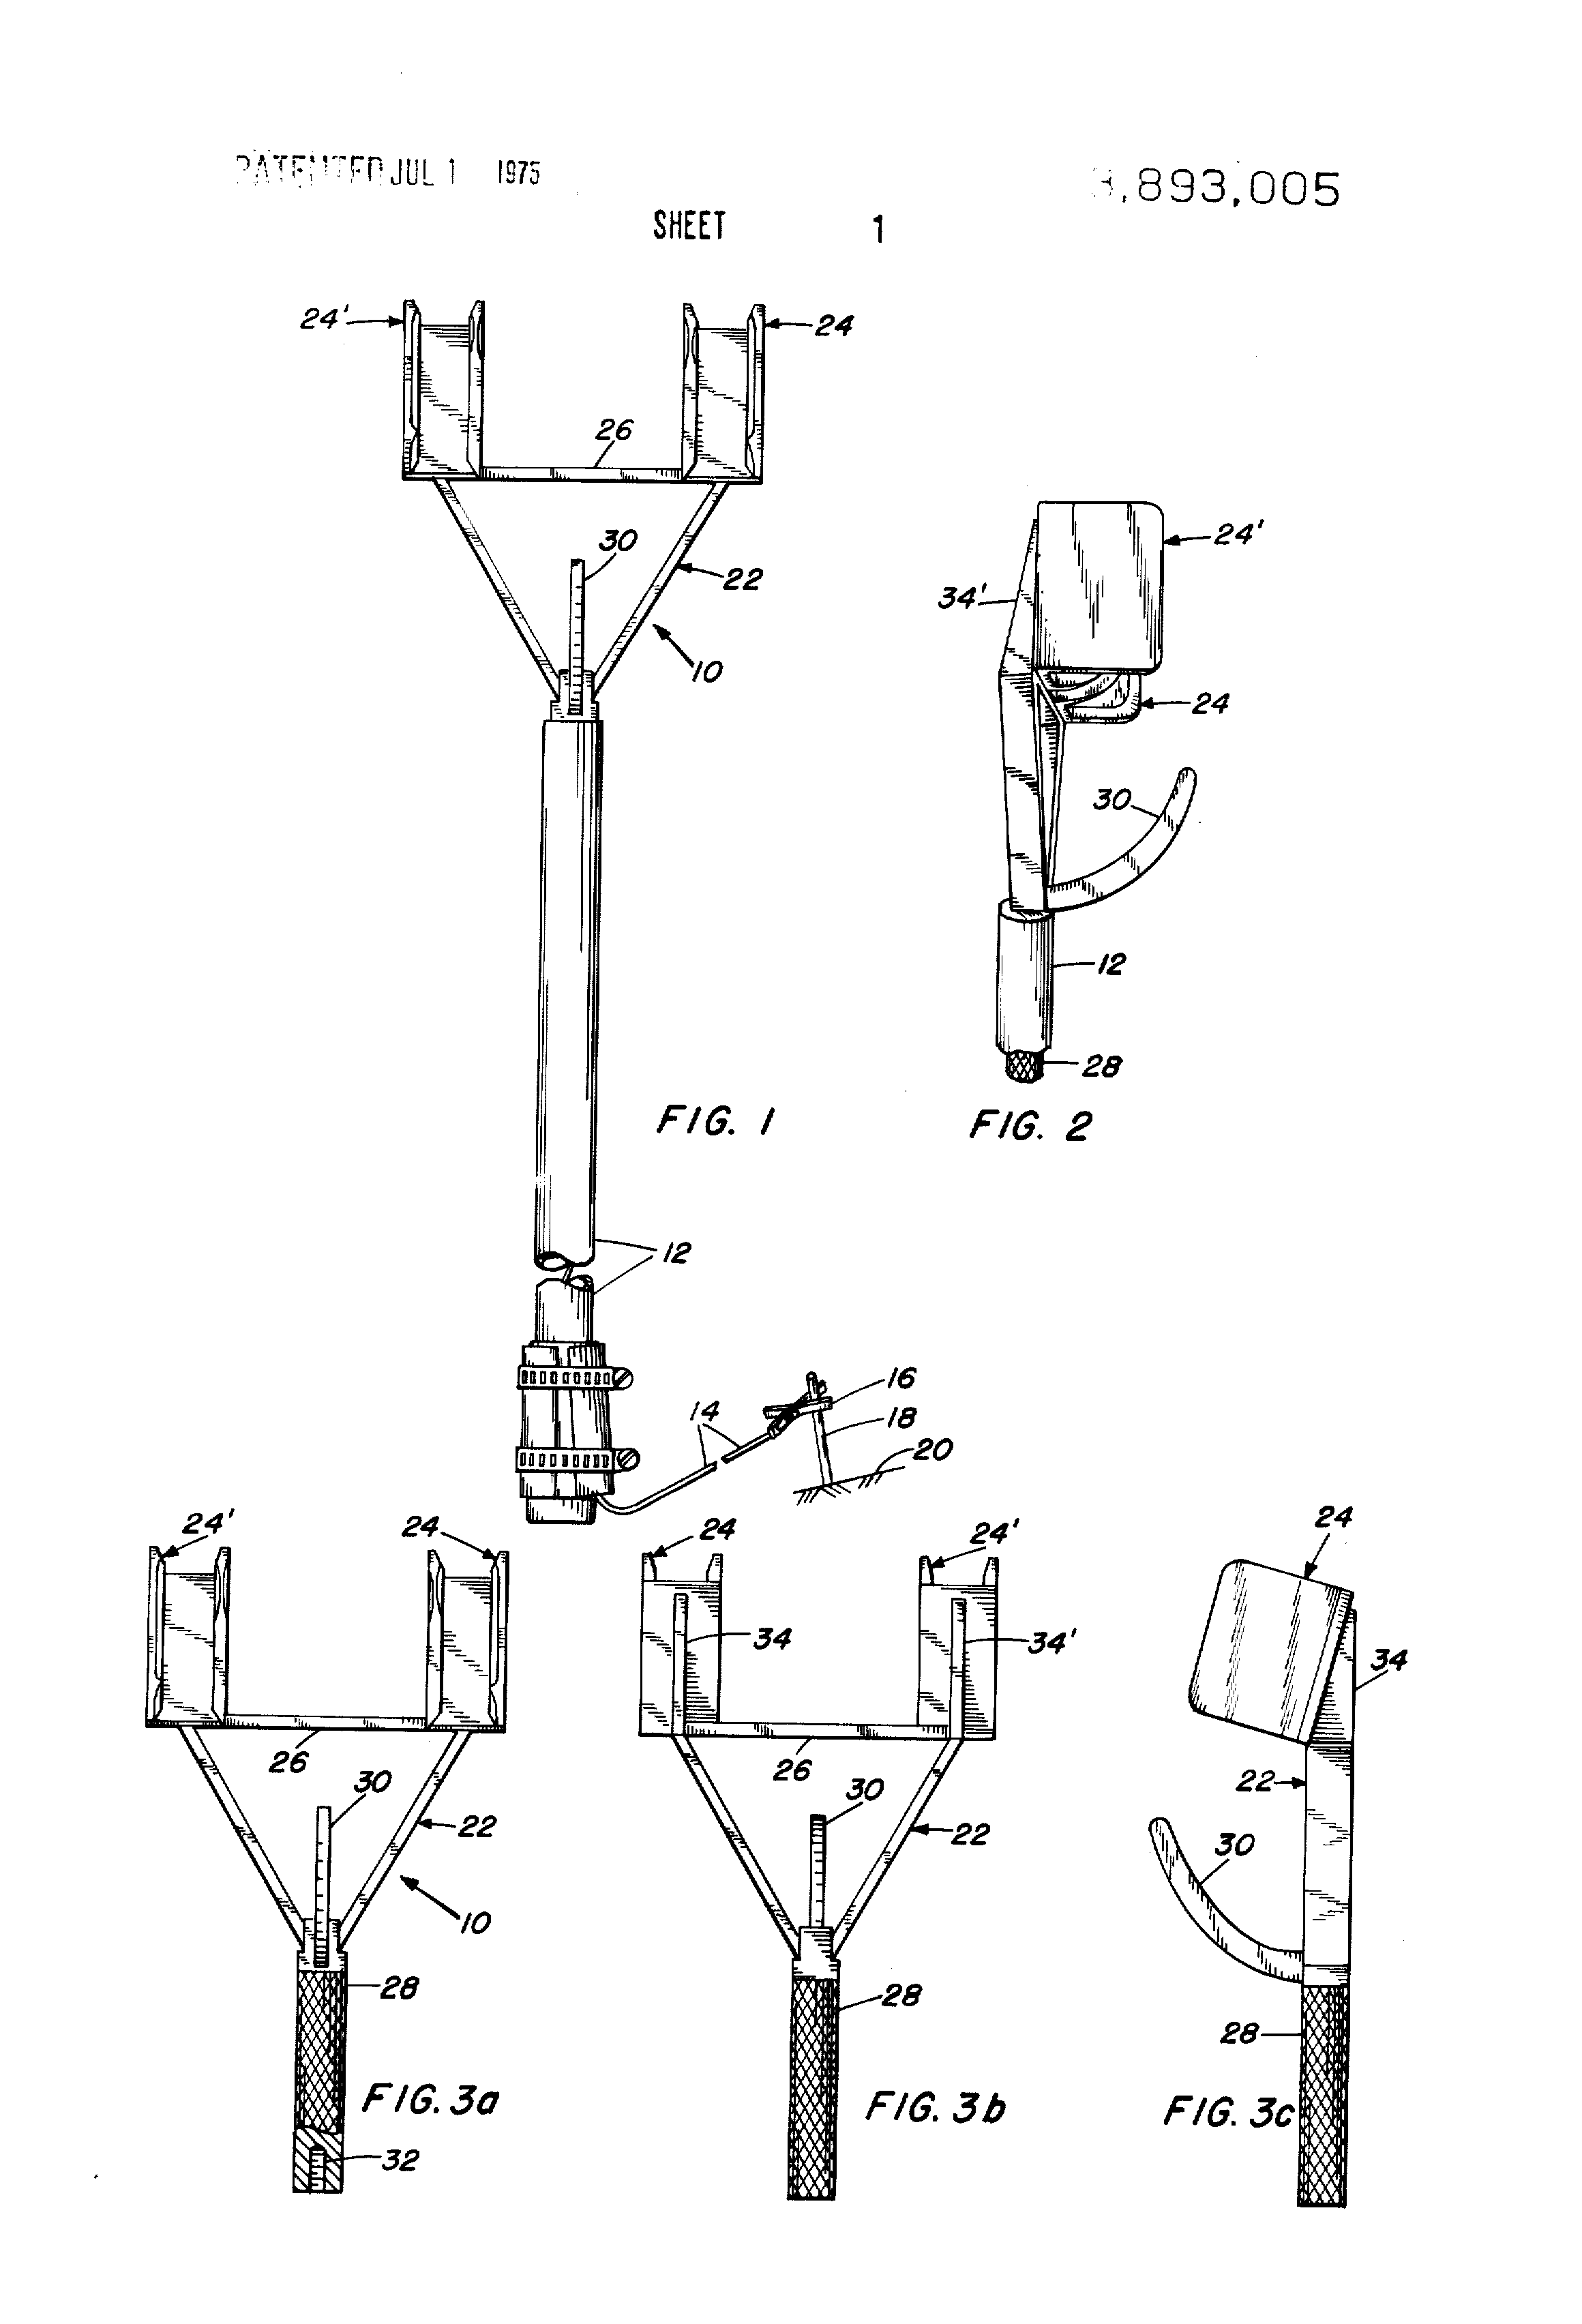 patent us3893005 - helicopter hook-up and static electricity grounding device